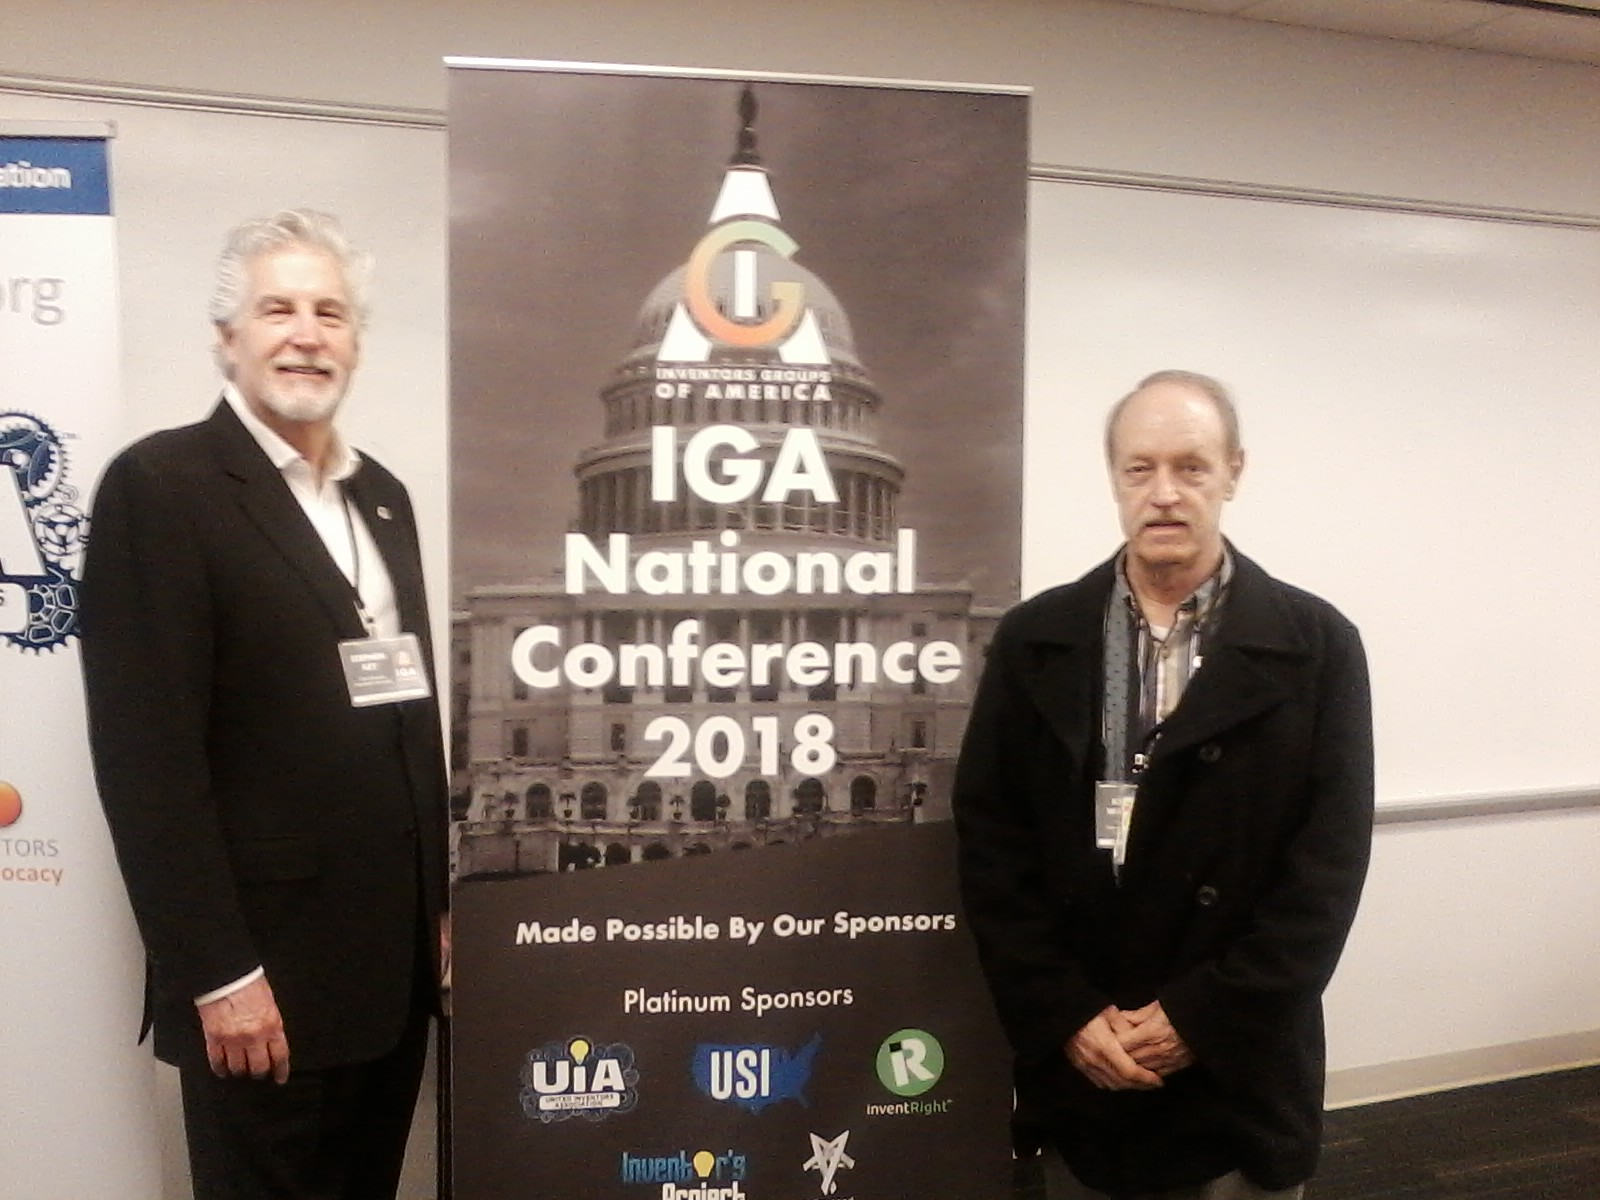 IGA National Conference 2018